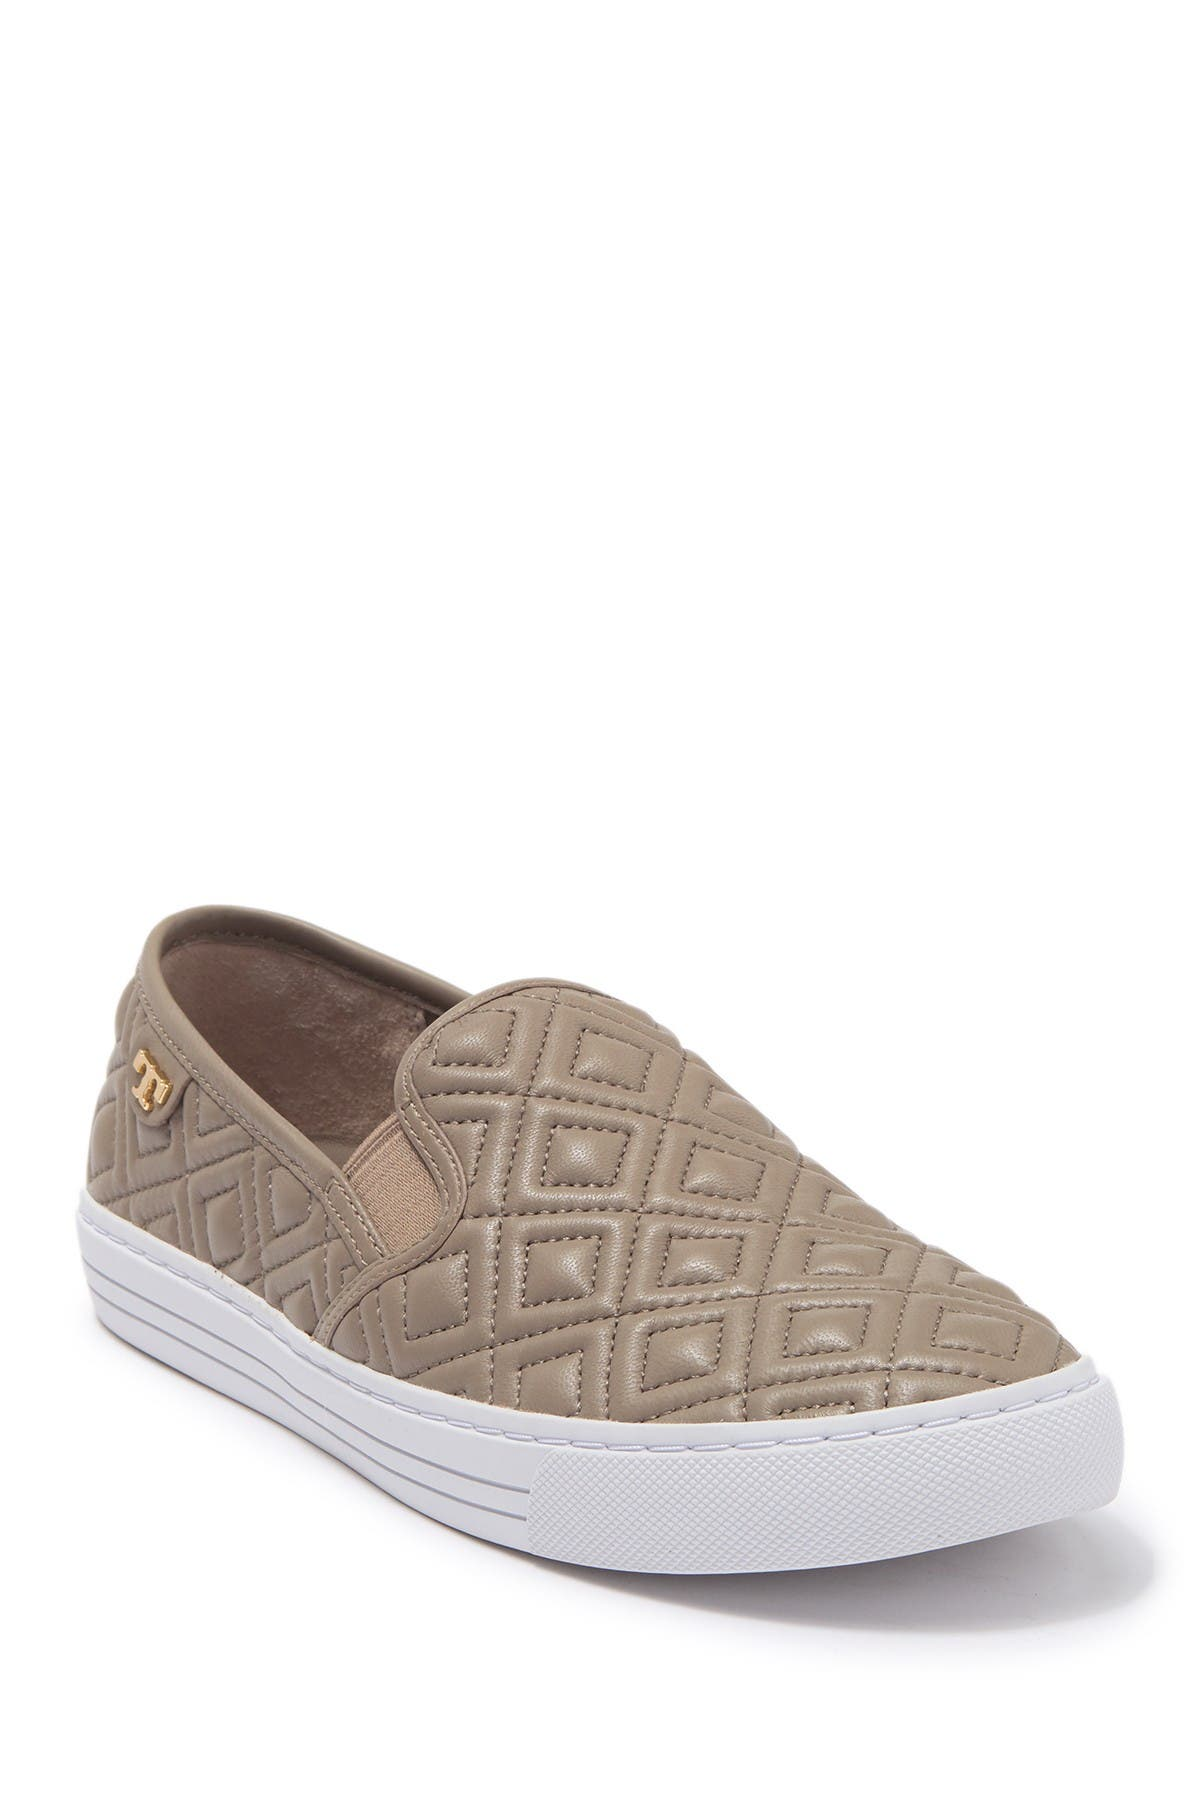 tory burch jesse quilted sneaker